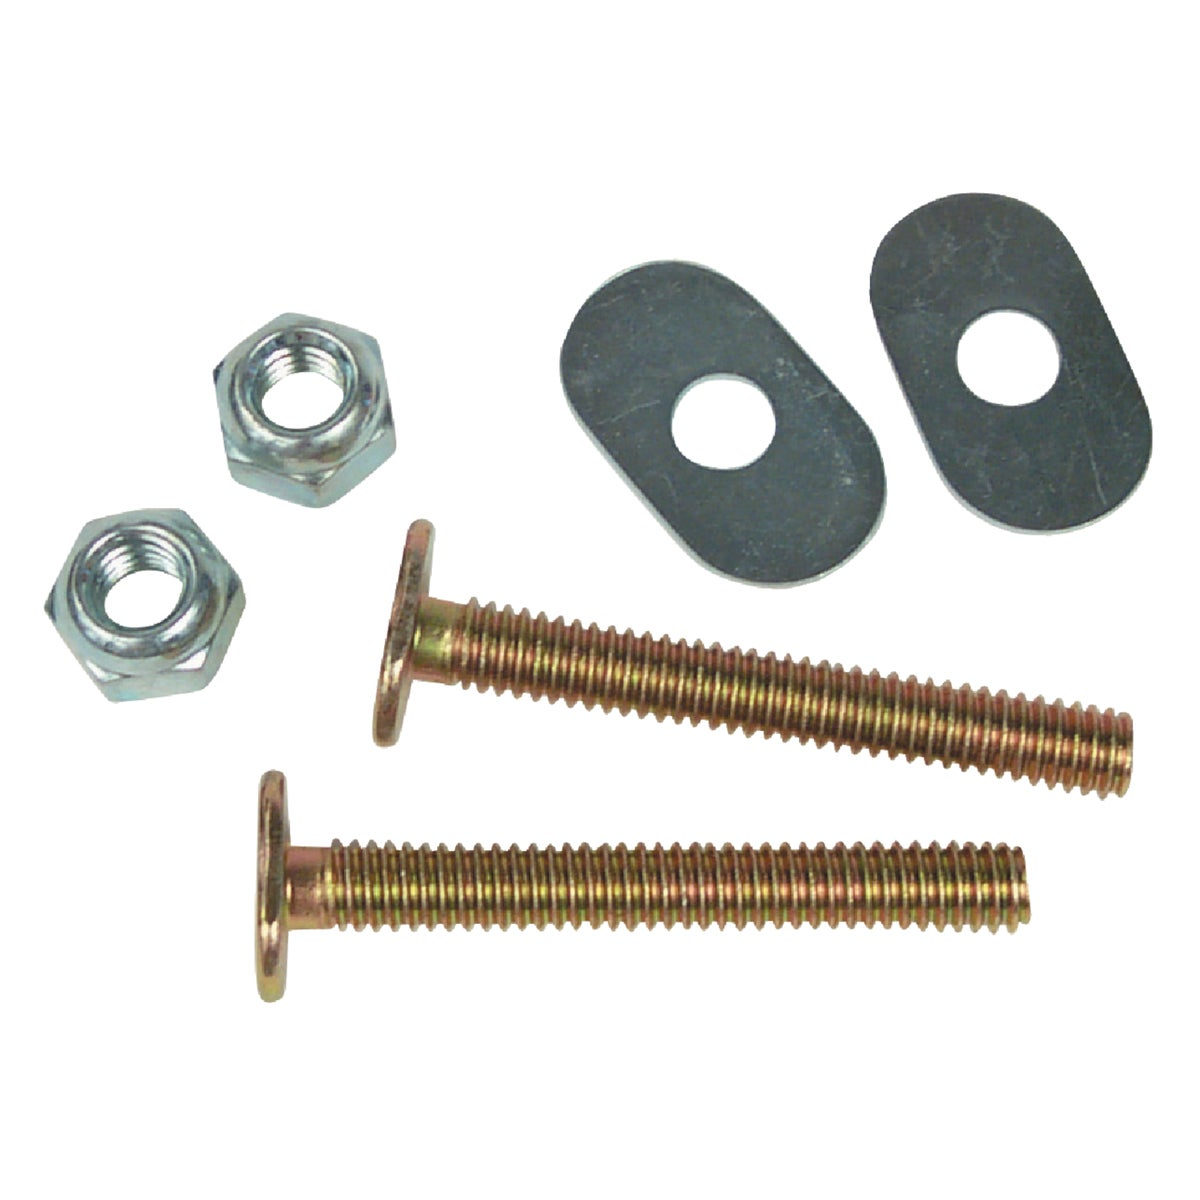 "5/16"" TOILET BOLT SET - 412368 by Do it Best"